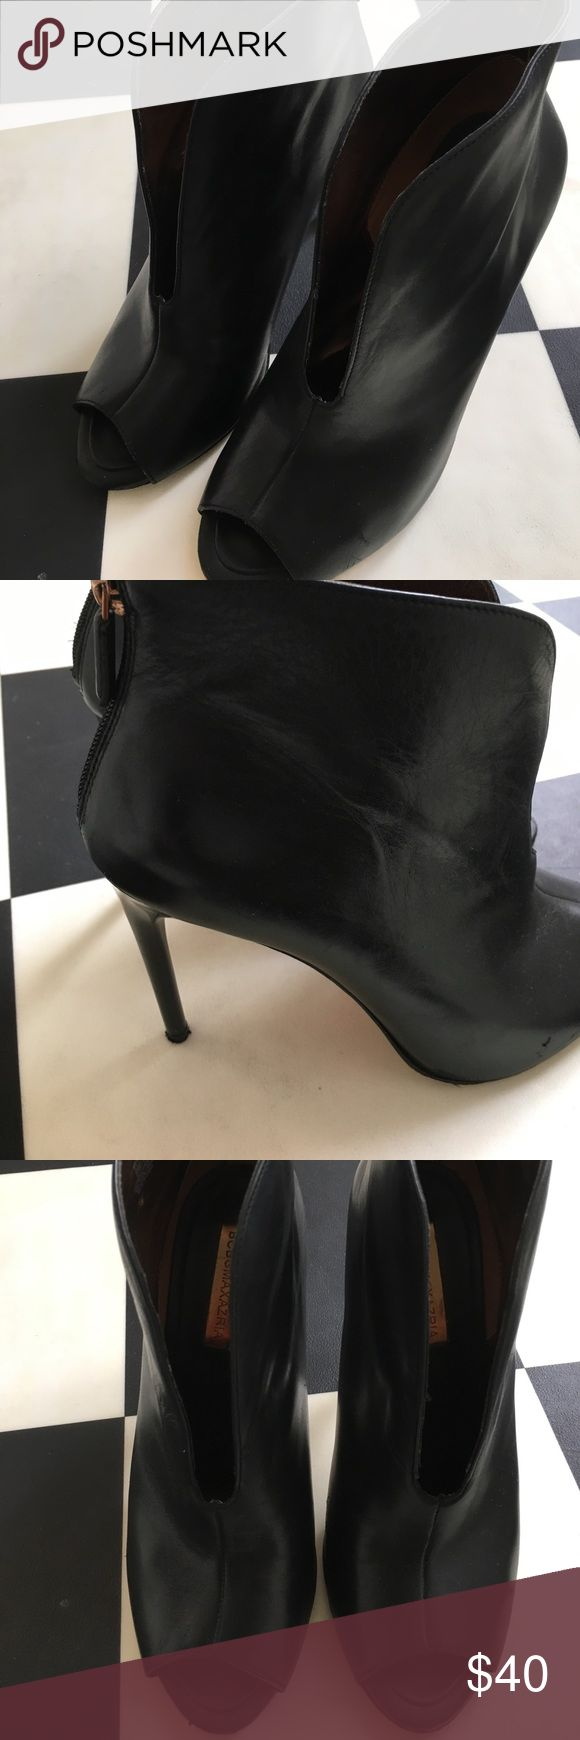 BCBG Max Azria peep toe stiletto booties Sexy stiletto peep toe booties with back zip are on trend and understated glam. In excellent used condition. BCBGMaxAzria Shoes Ankle Boots & Booties